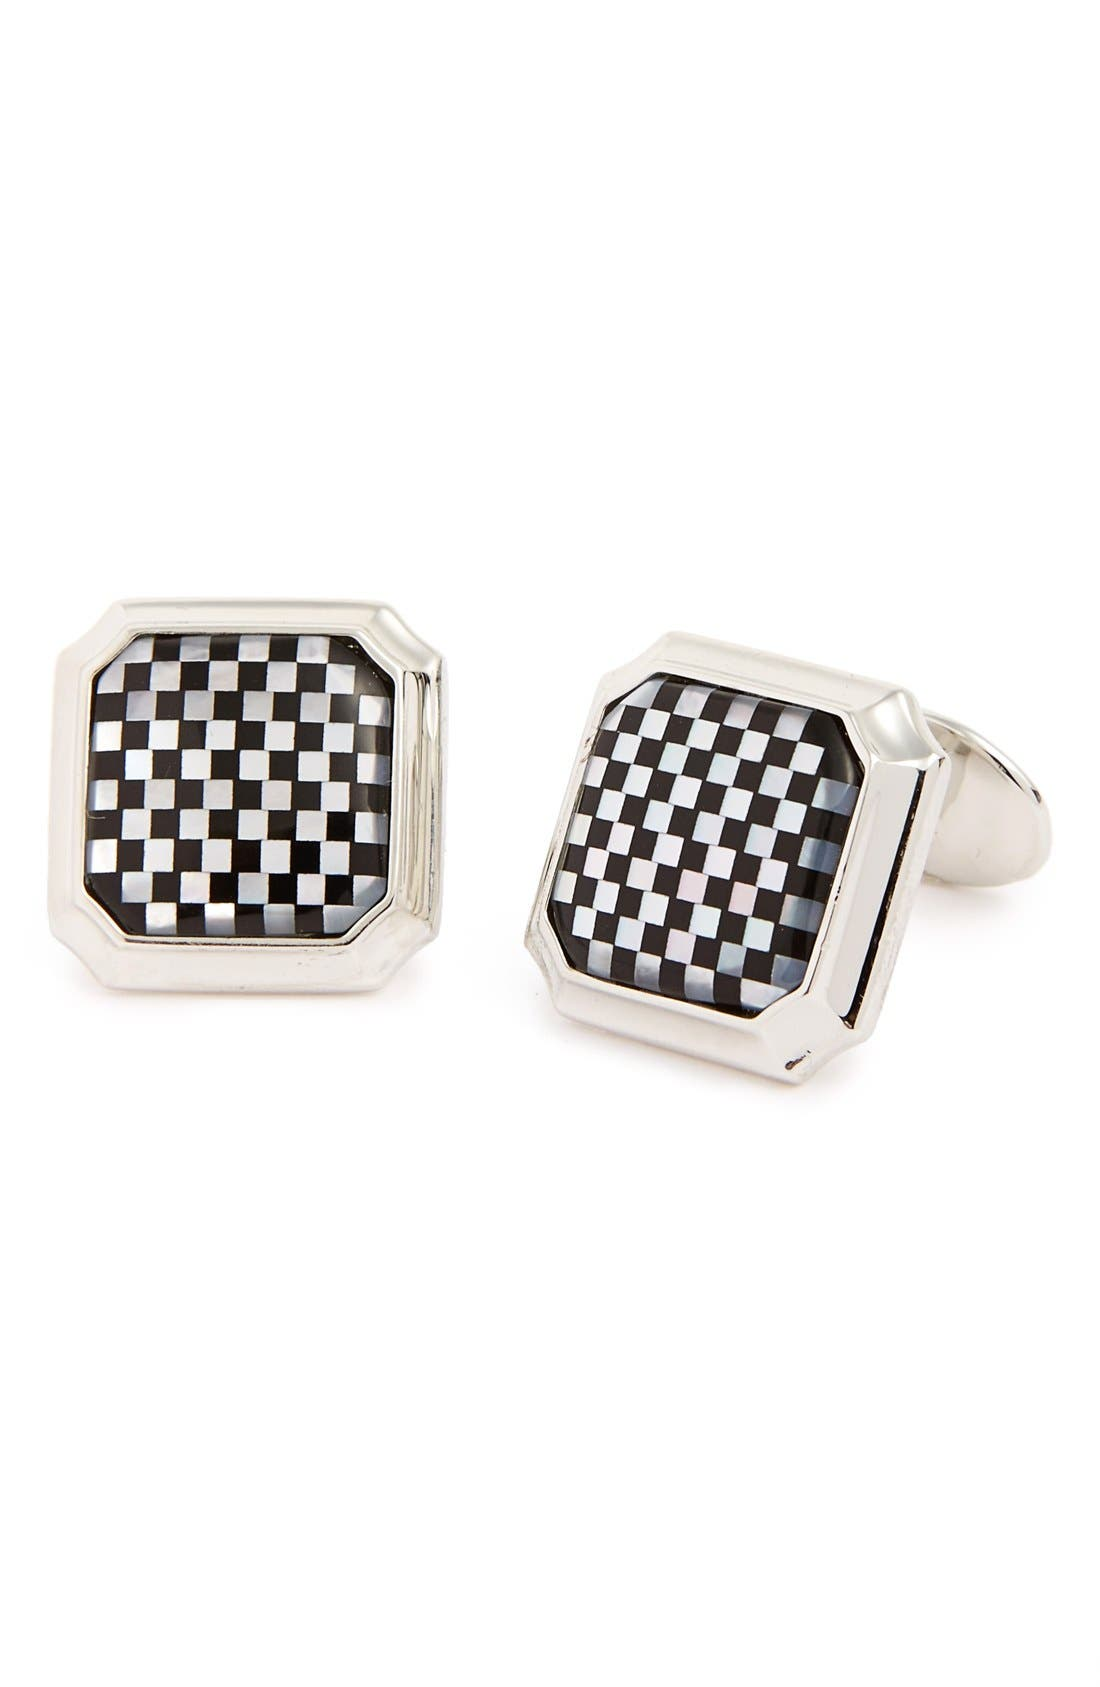 DAVID DONAHUE Sterling Silver Cuff Links